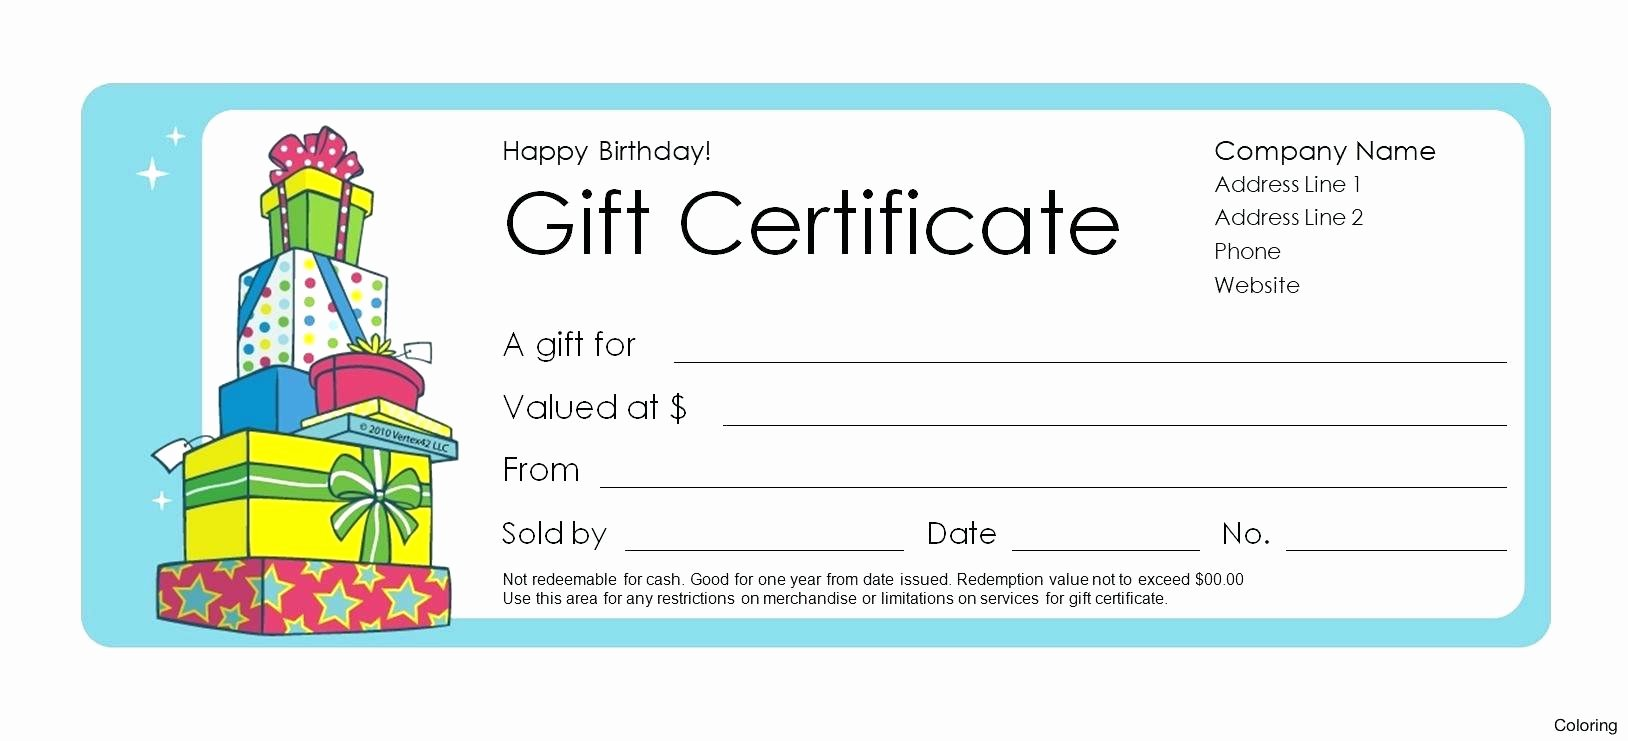 Ms Word Gift Certificate Template Unique How to Numbered Gift Certificates In Publisher Gift Ftempo